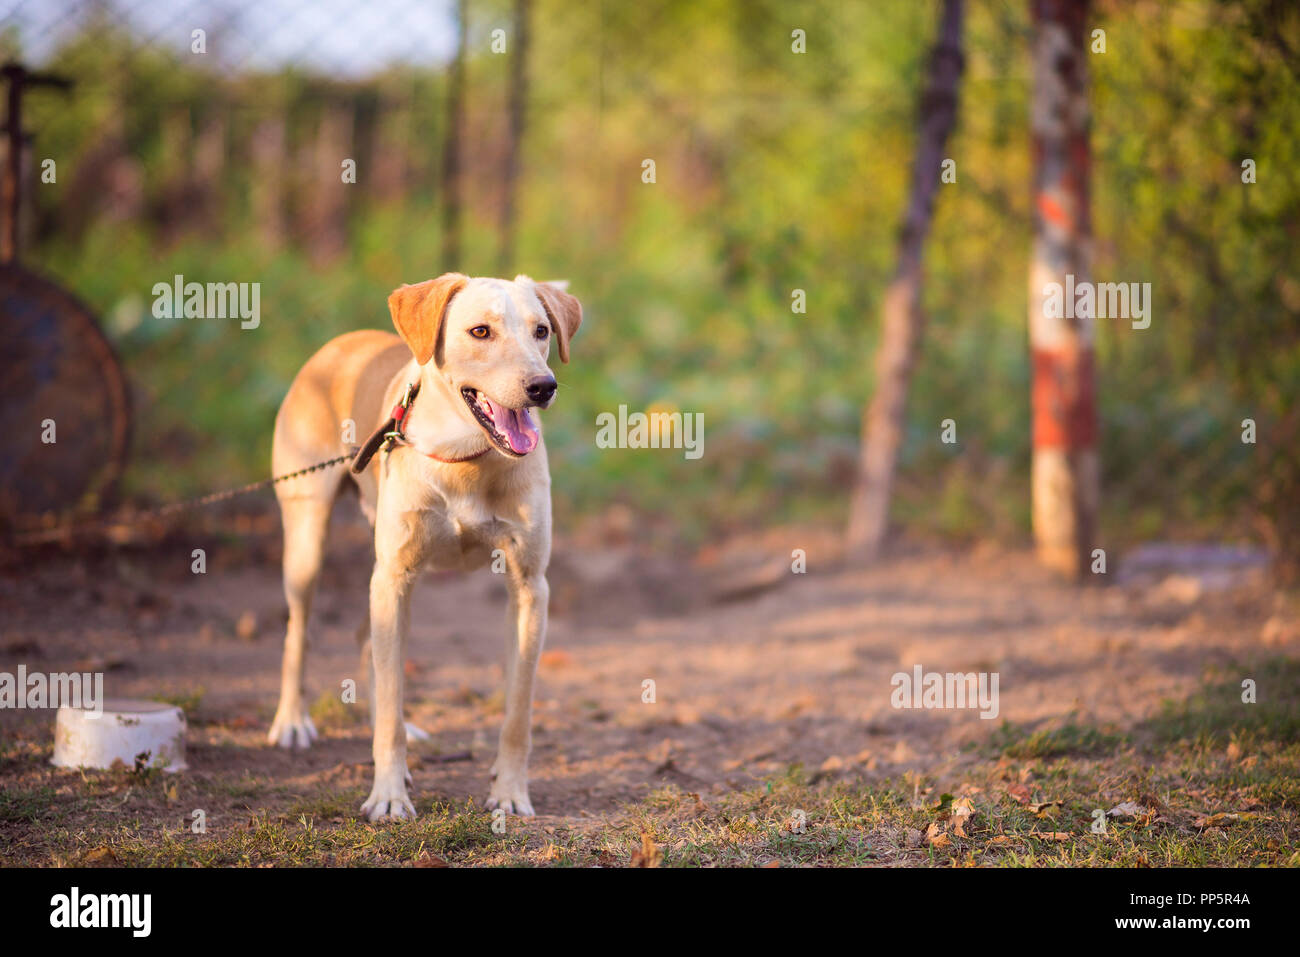 Domestic dog chained in garden - Stock Image